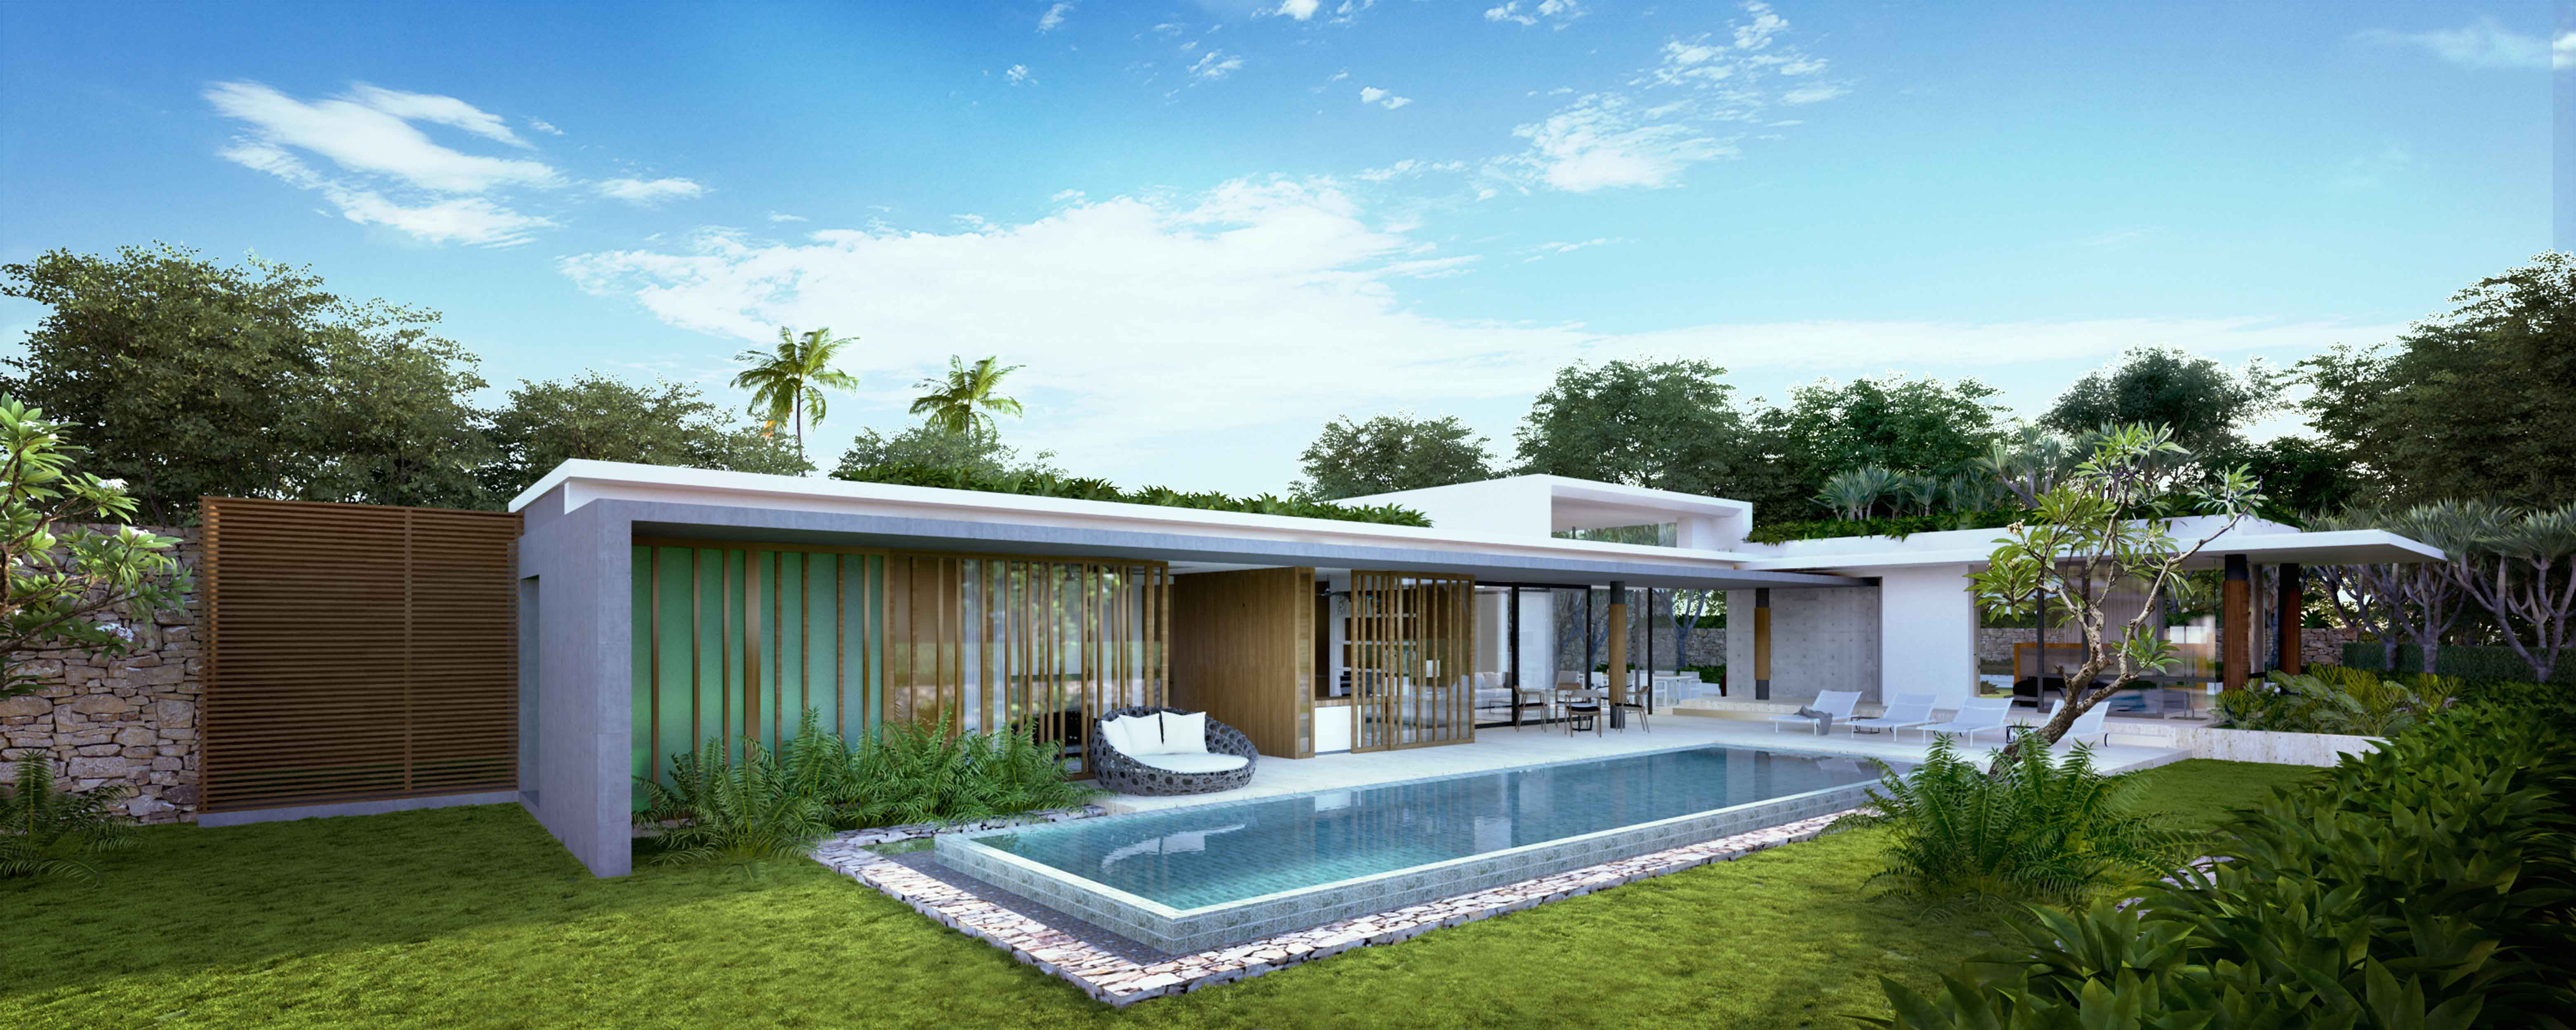 Projects Photo/Sunplay Lifestyle Bangsaray Thailand/sunplay-lifestyle-villa-e1